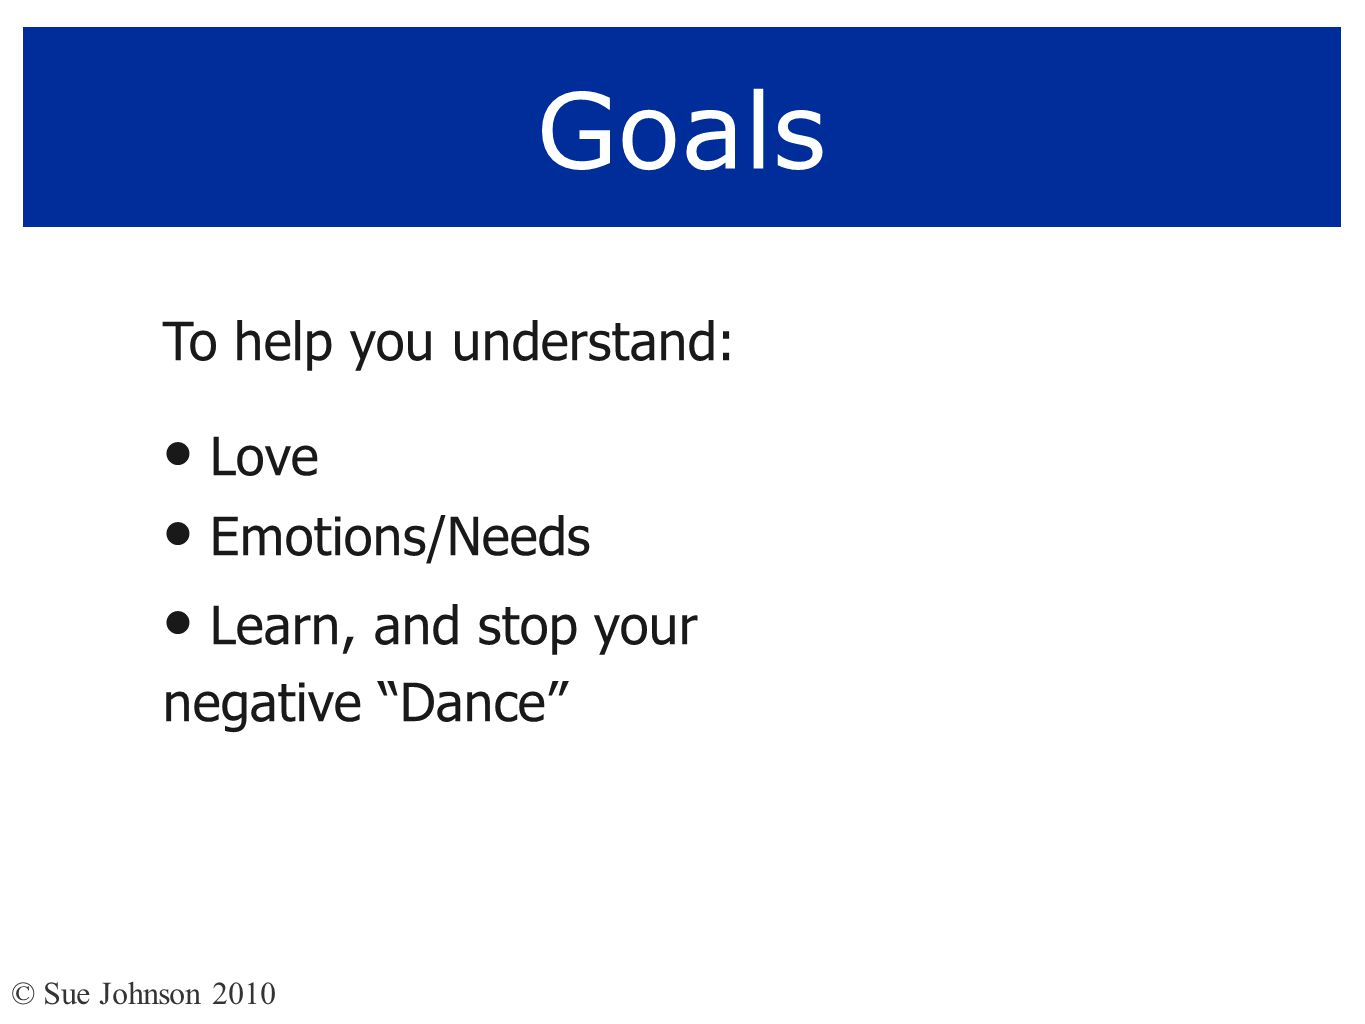 Ways to keep your love alive 4.Do HMT (fears & needs) conversations.